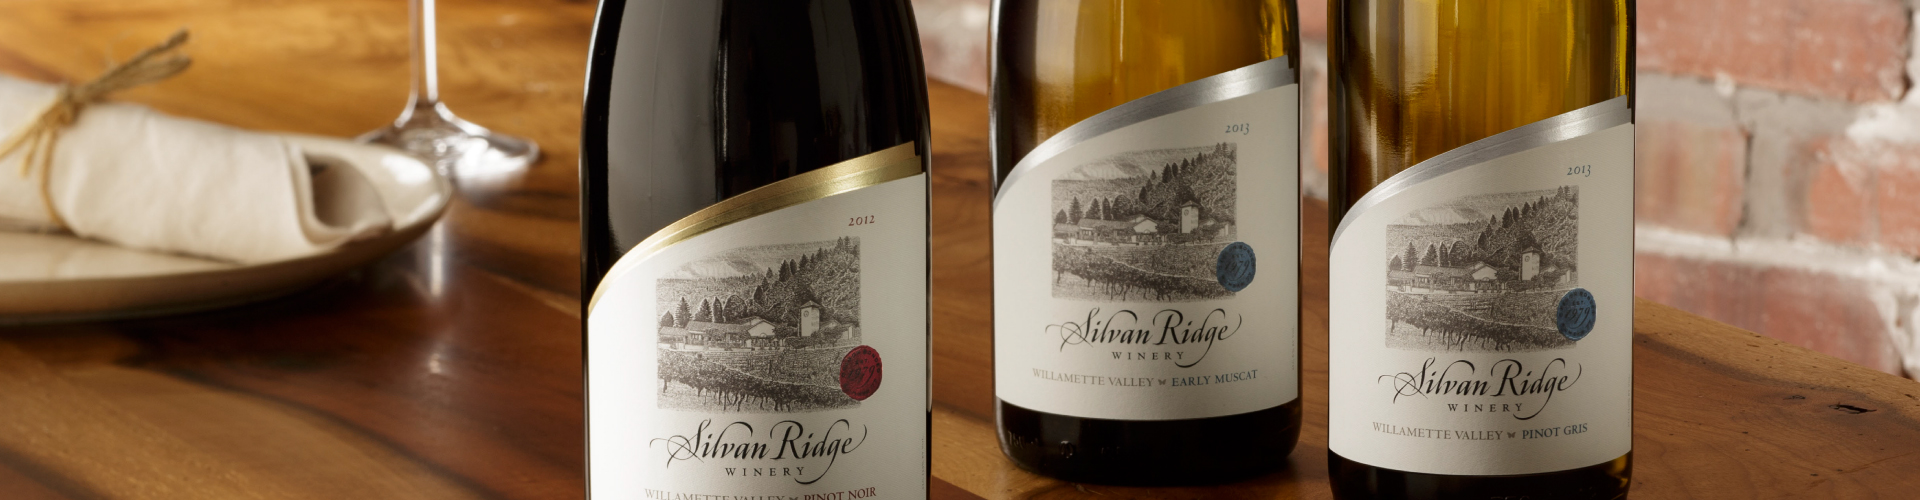 Find a distributor of Silvan Ridge wines.